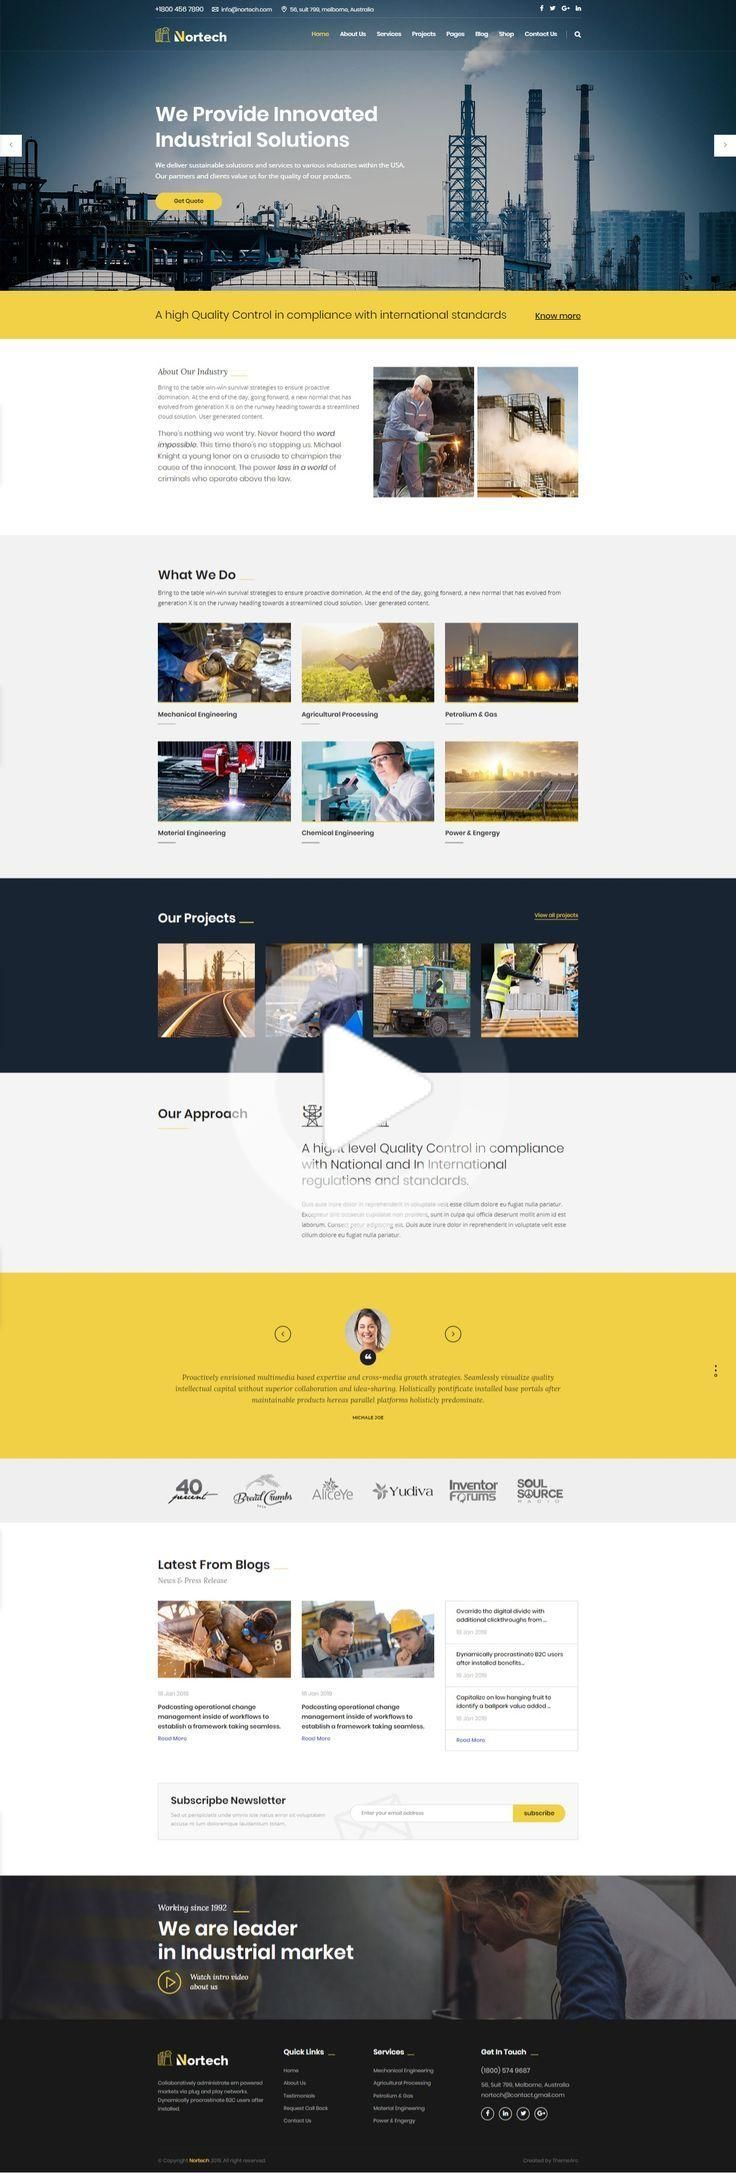 Industry And Engineering Html Website Template In 2020 Business Website Design Templates Html Website Templates Business Website Templates